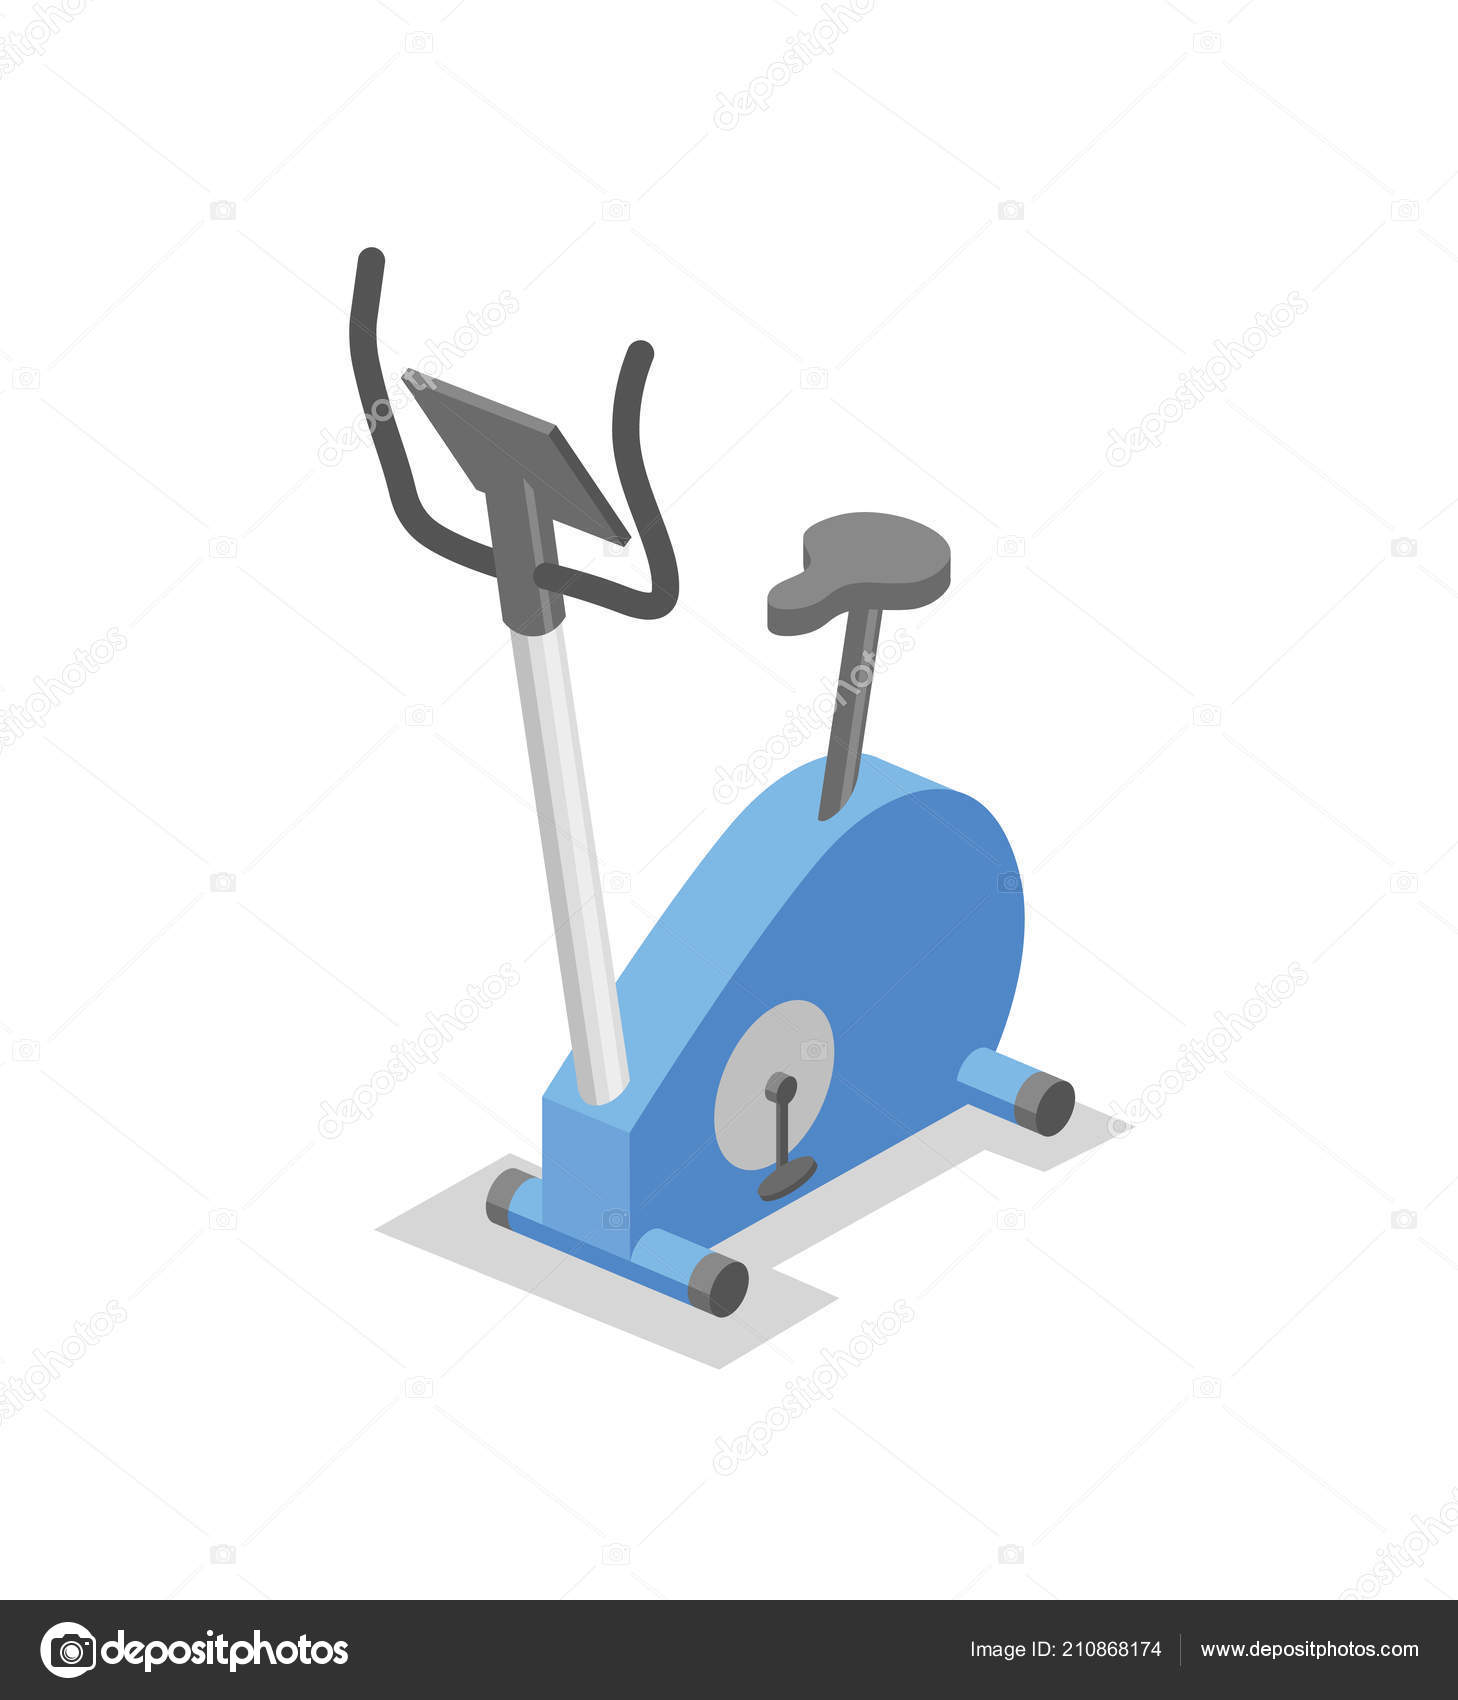 Spin bike, training apparatus for the gym  Fitness equipment